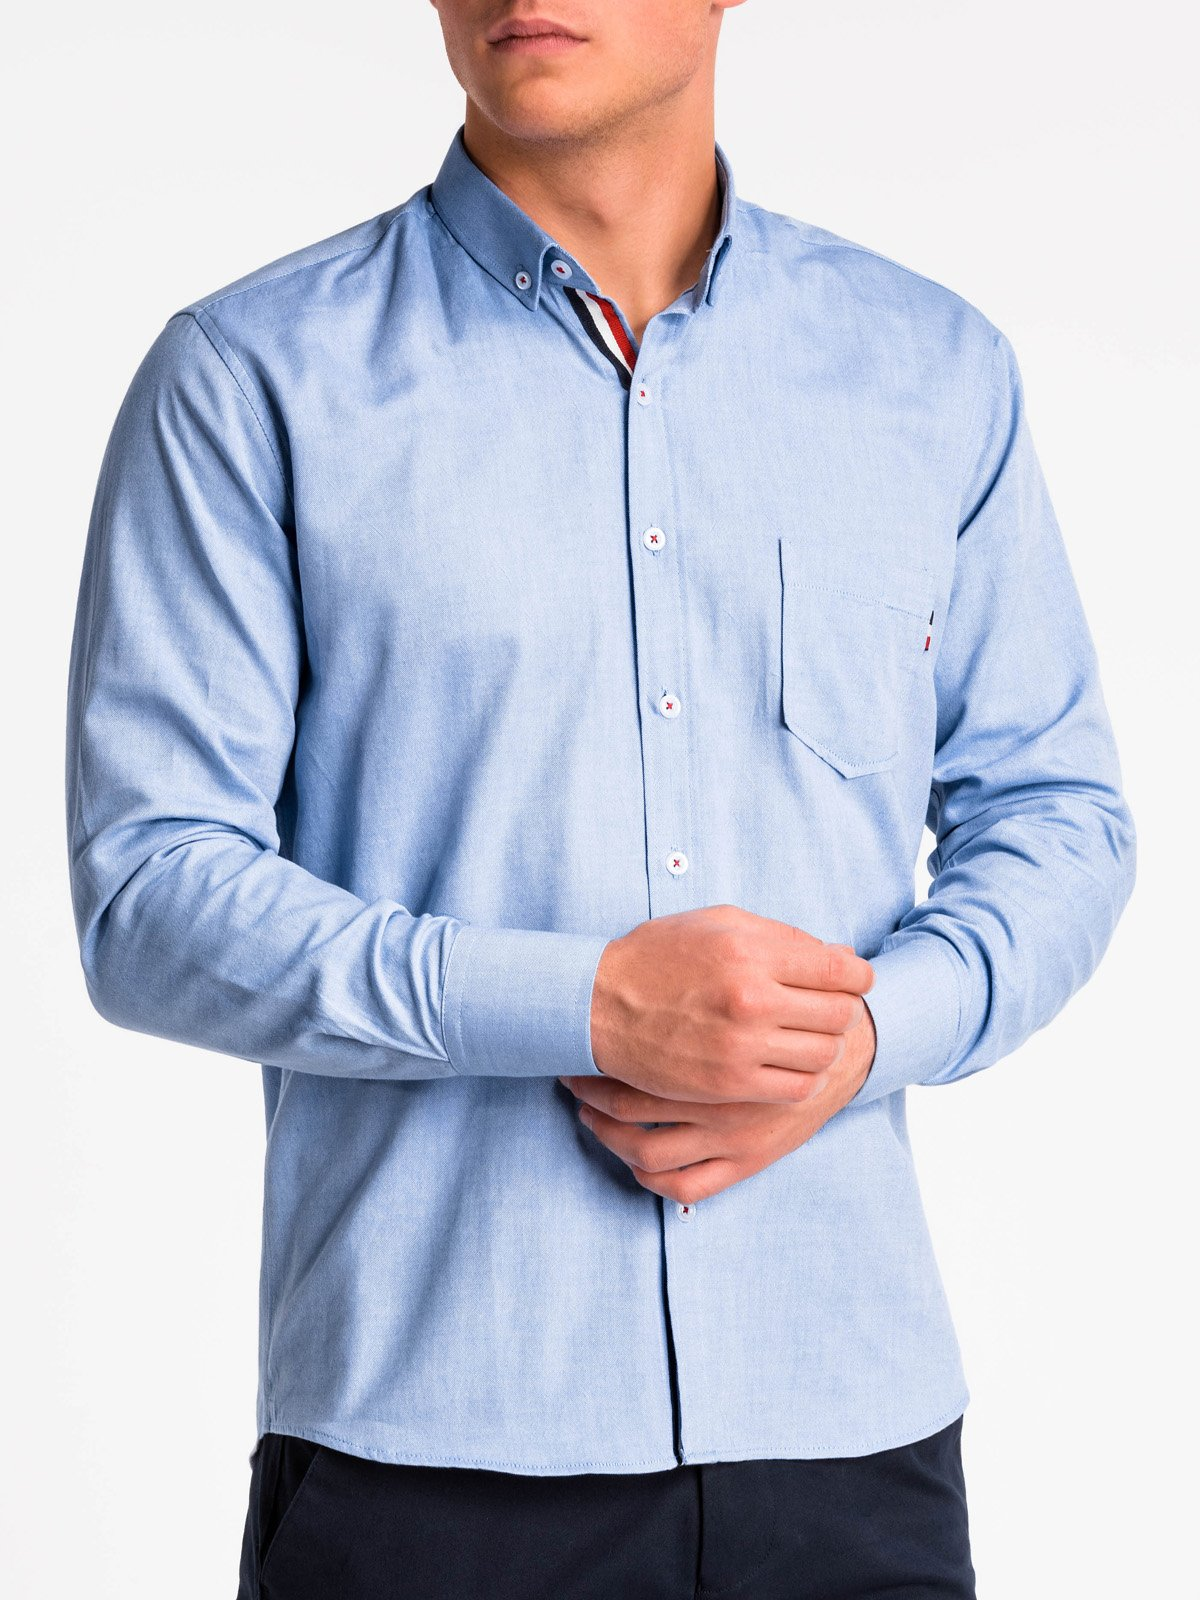 Ombre Clothing Men's elegant shirt with long sleeves K490